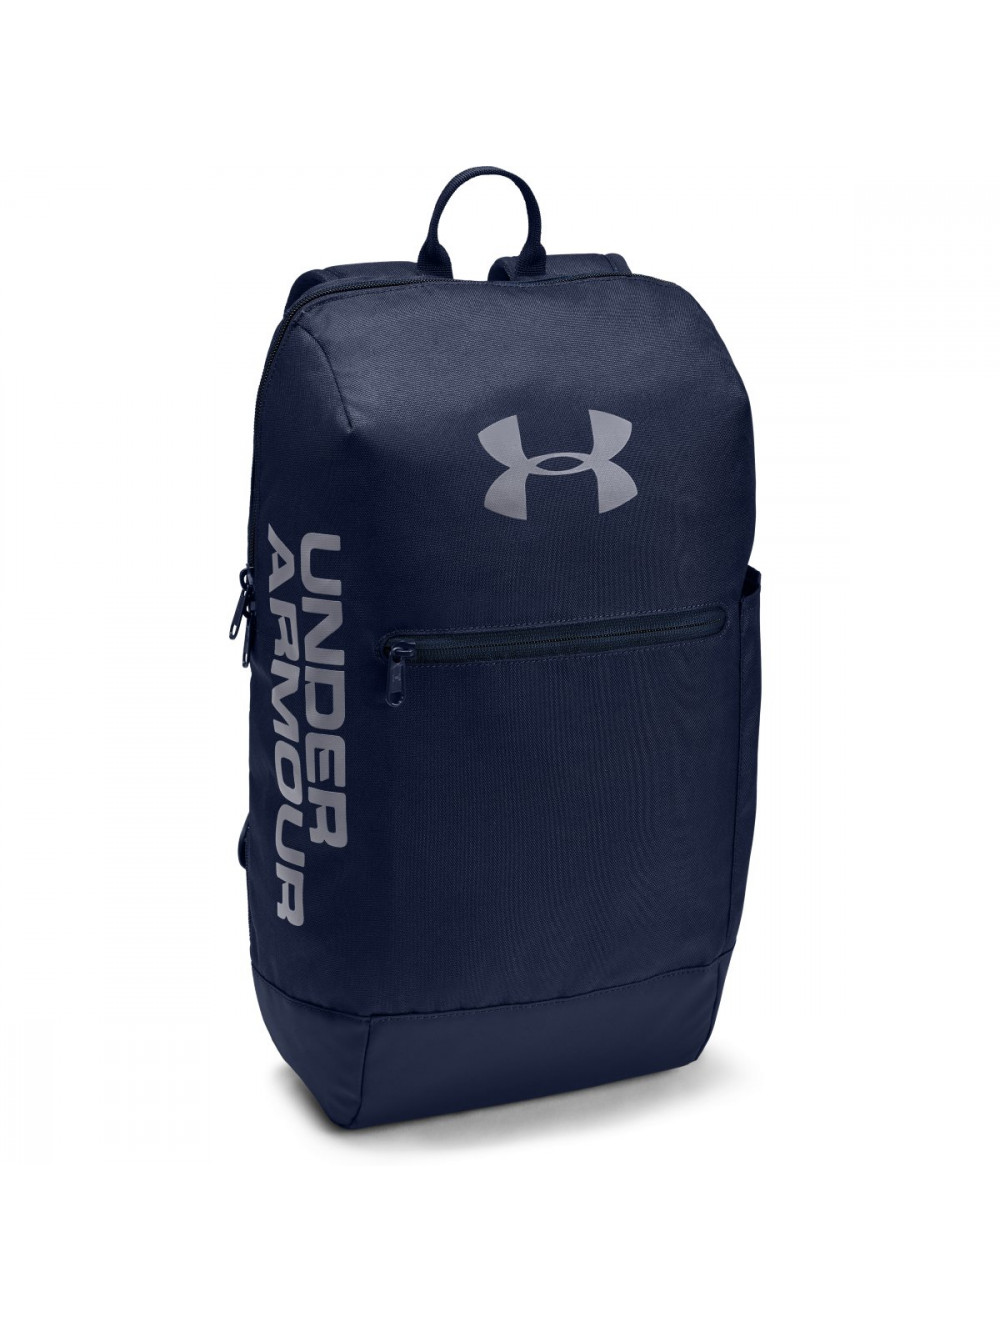 Batoh Under Armour Patterson Backpack-NVY modrý